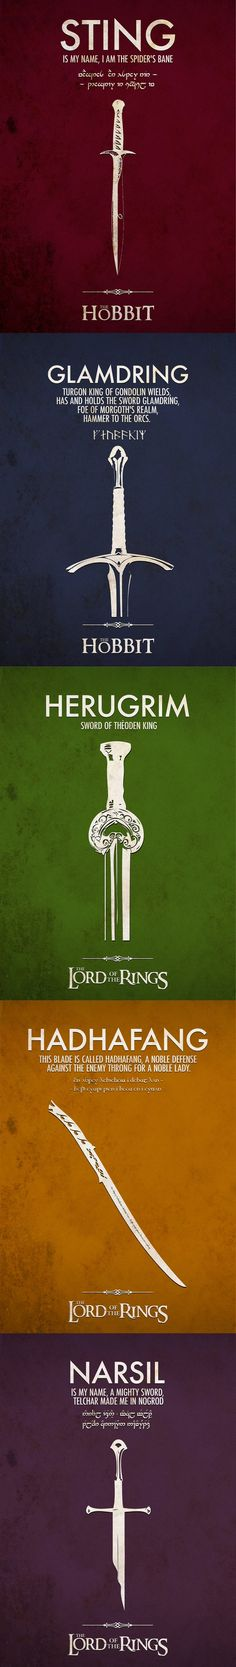 Middle Earth Swords